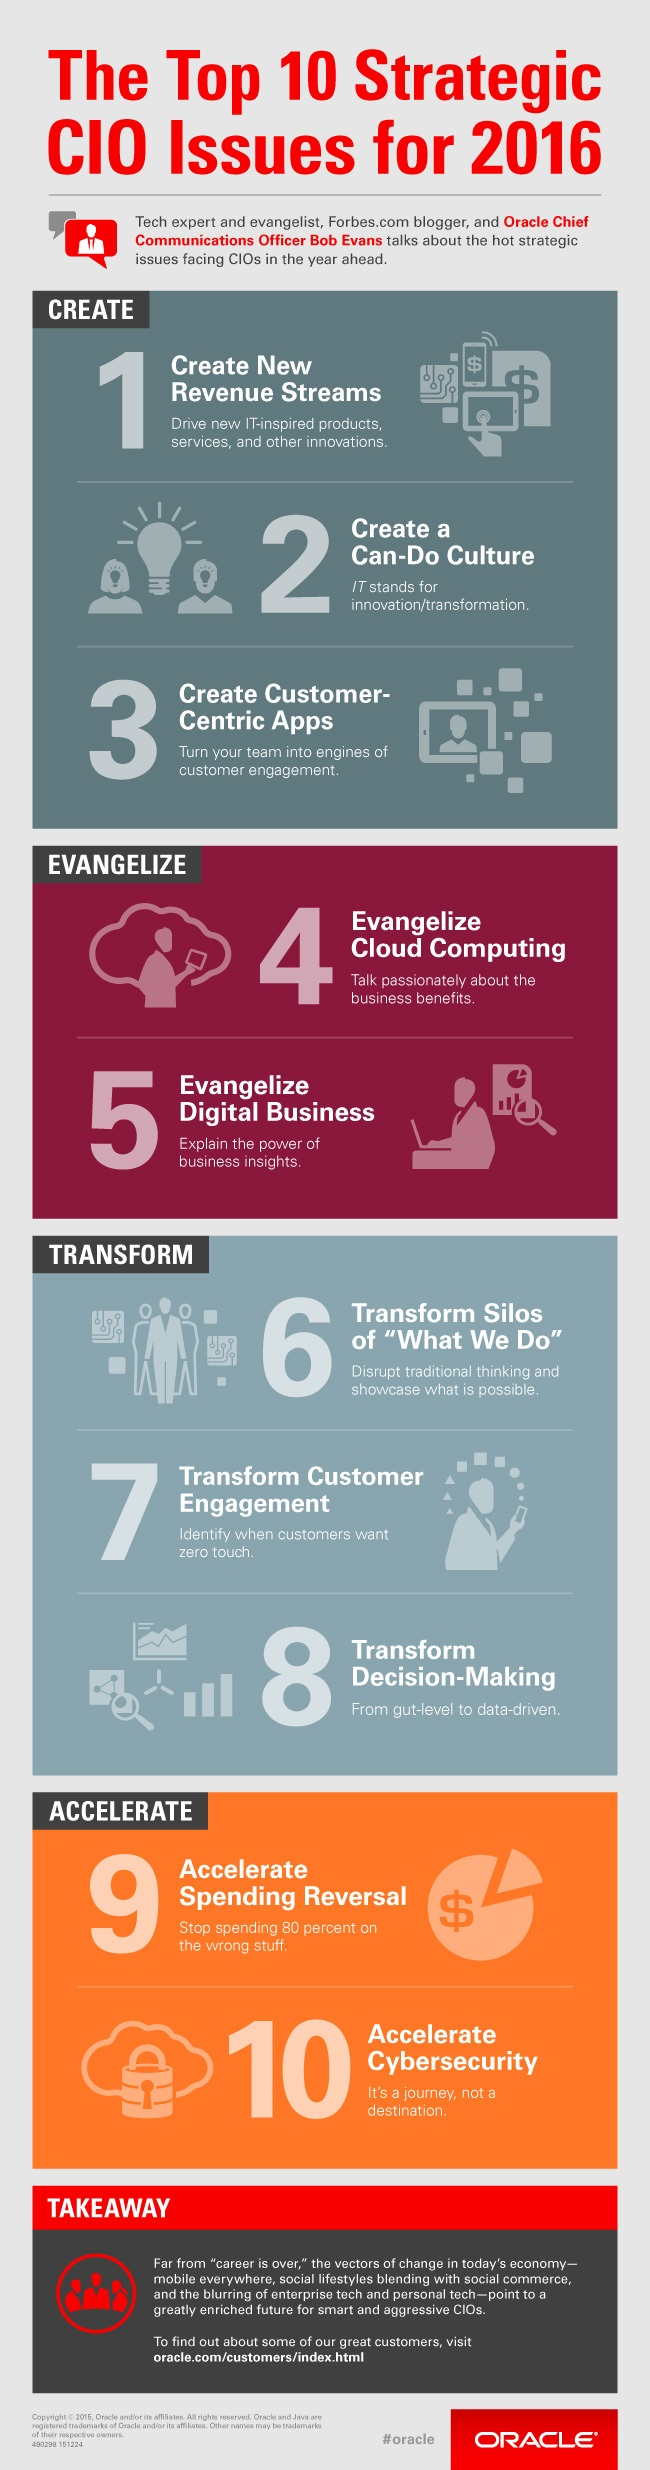 Oracle 2016_top_strgc_cio_forbes_infogrpc-650